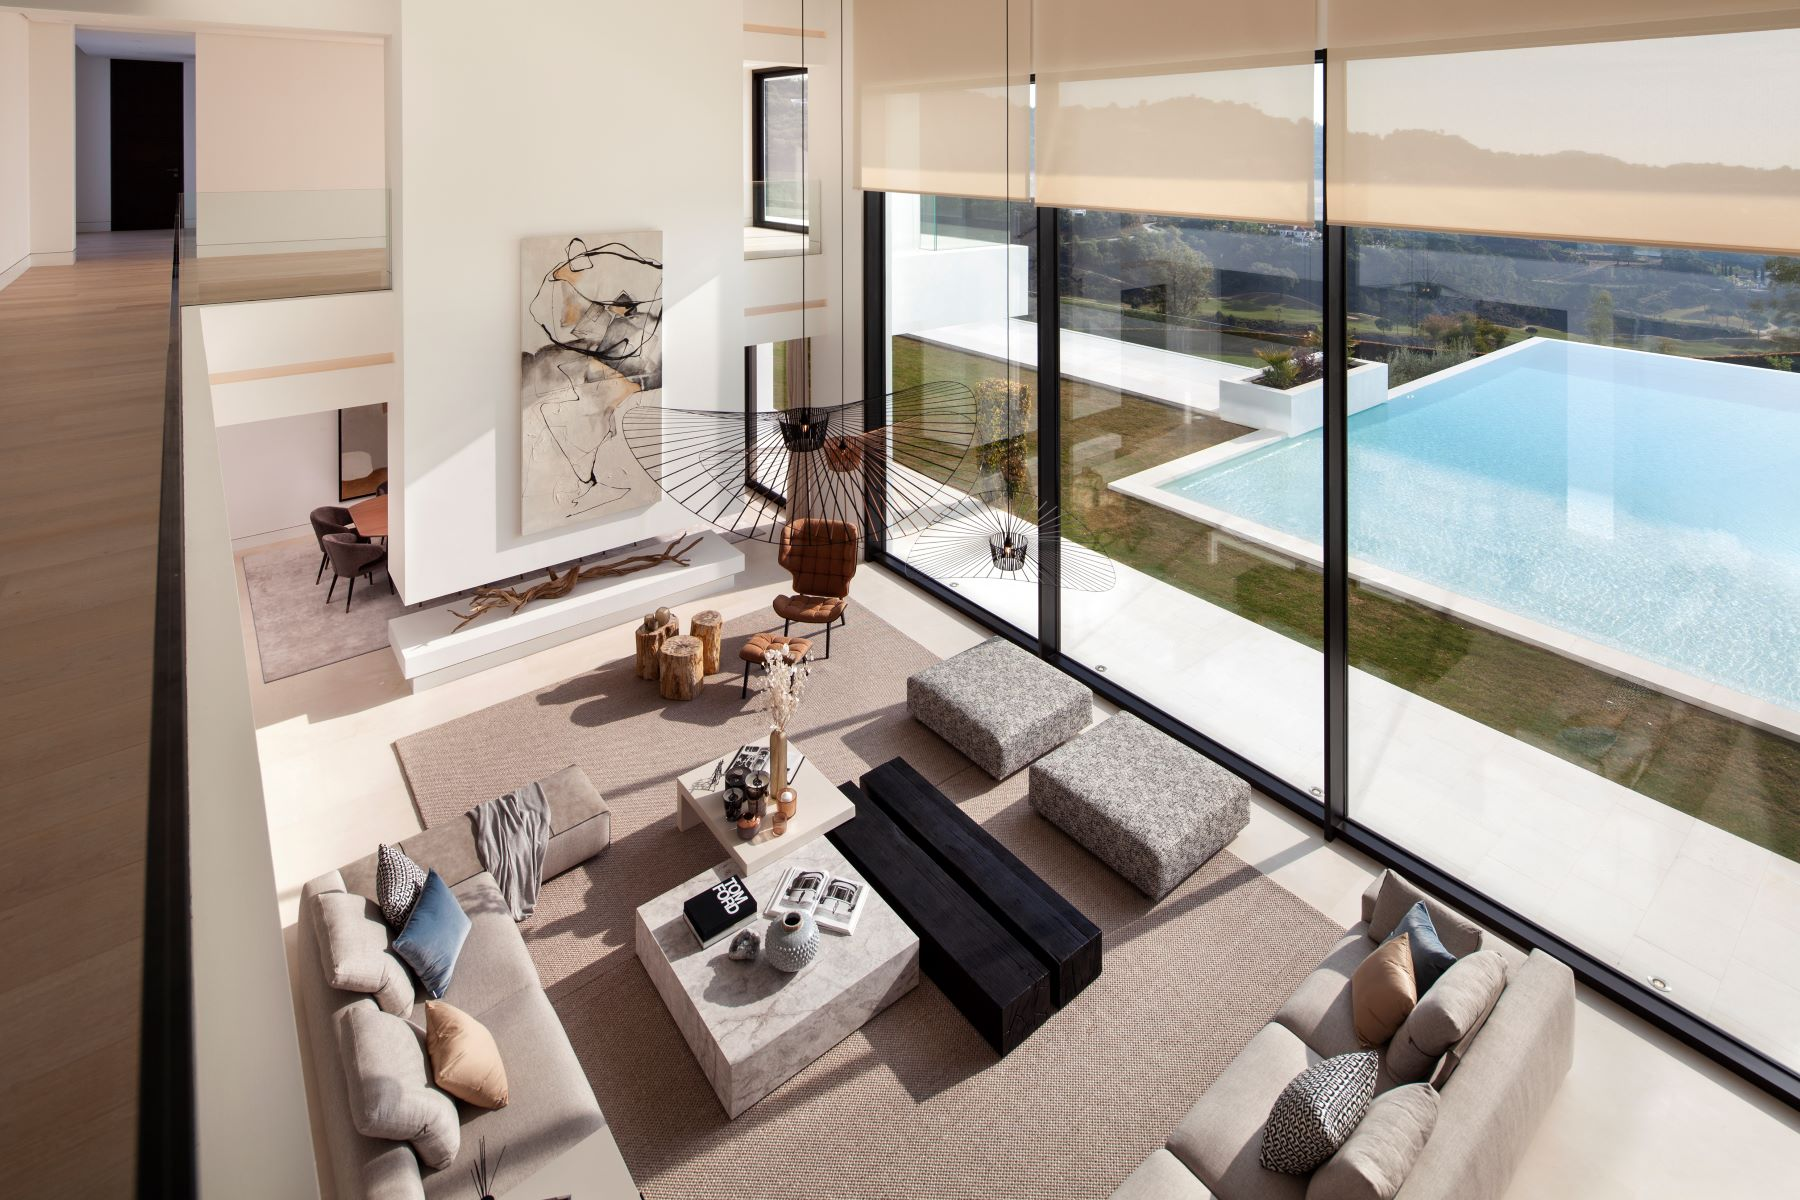 Property for Sale at Contemporary Home in La Zagaleta Golf Resort Other Andalucia, Andalucia Spain